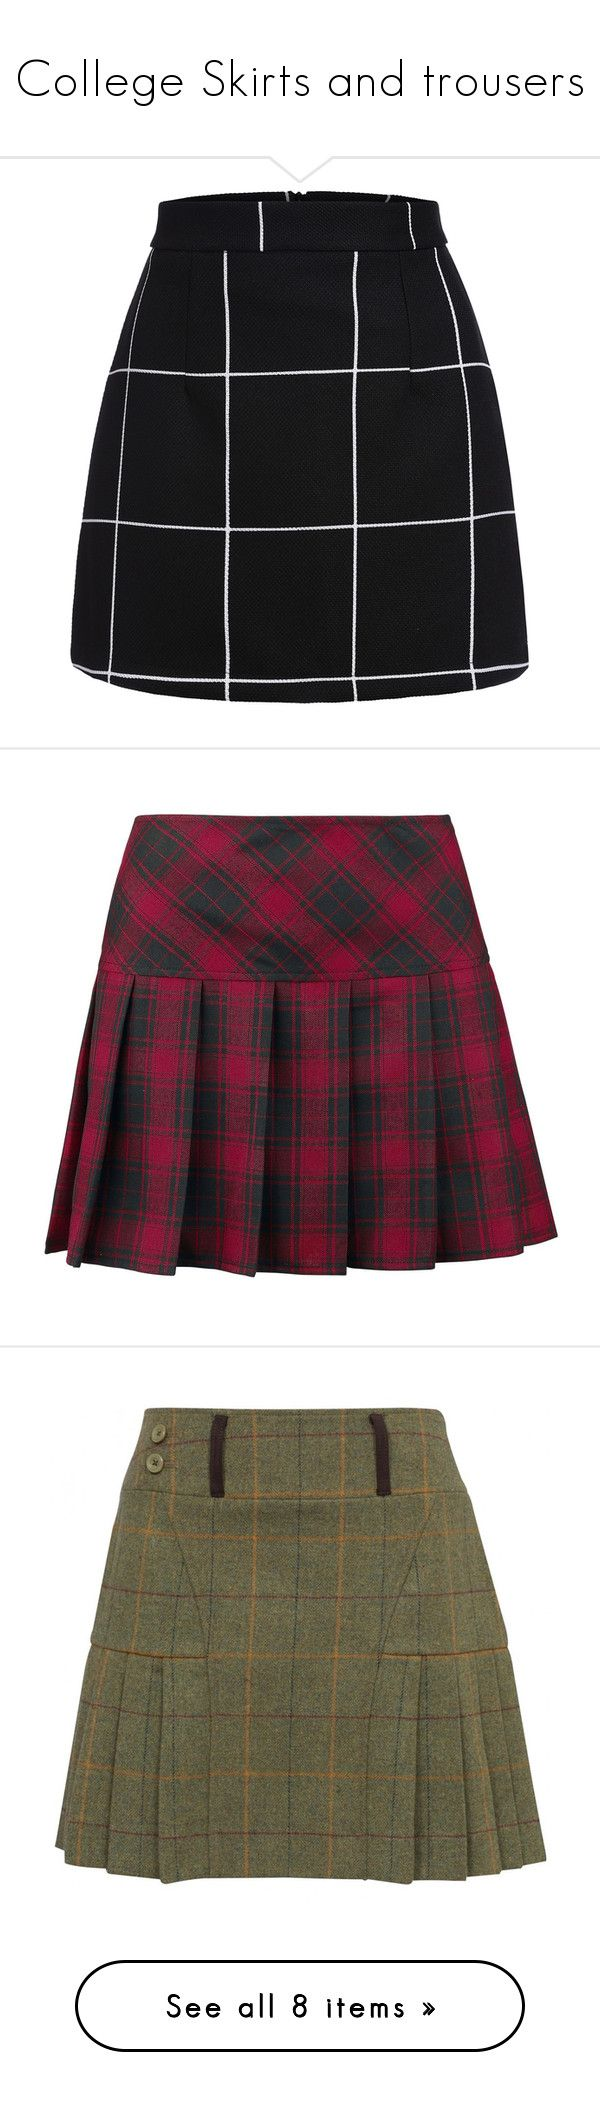 """""""College Skirts and trousers"""" by xenia-fashionista ❤ liked on Polyvore featuring skirts, mini skirts, bottoms, saias, faldas, black, tartan skirt, plaid miniskirts, short skirts and short miniskirt"""